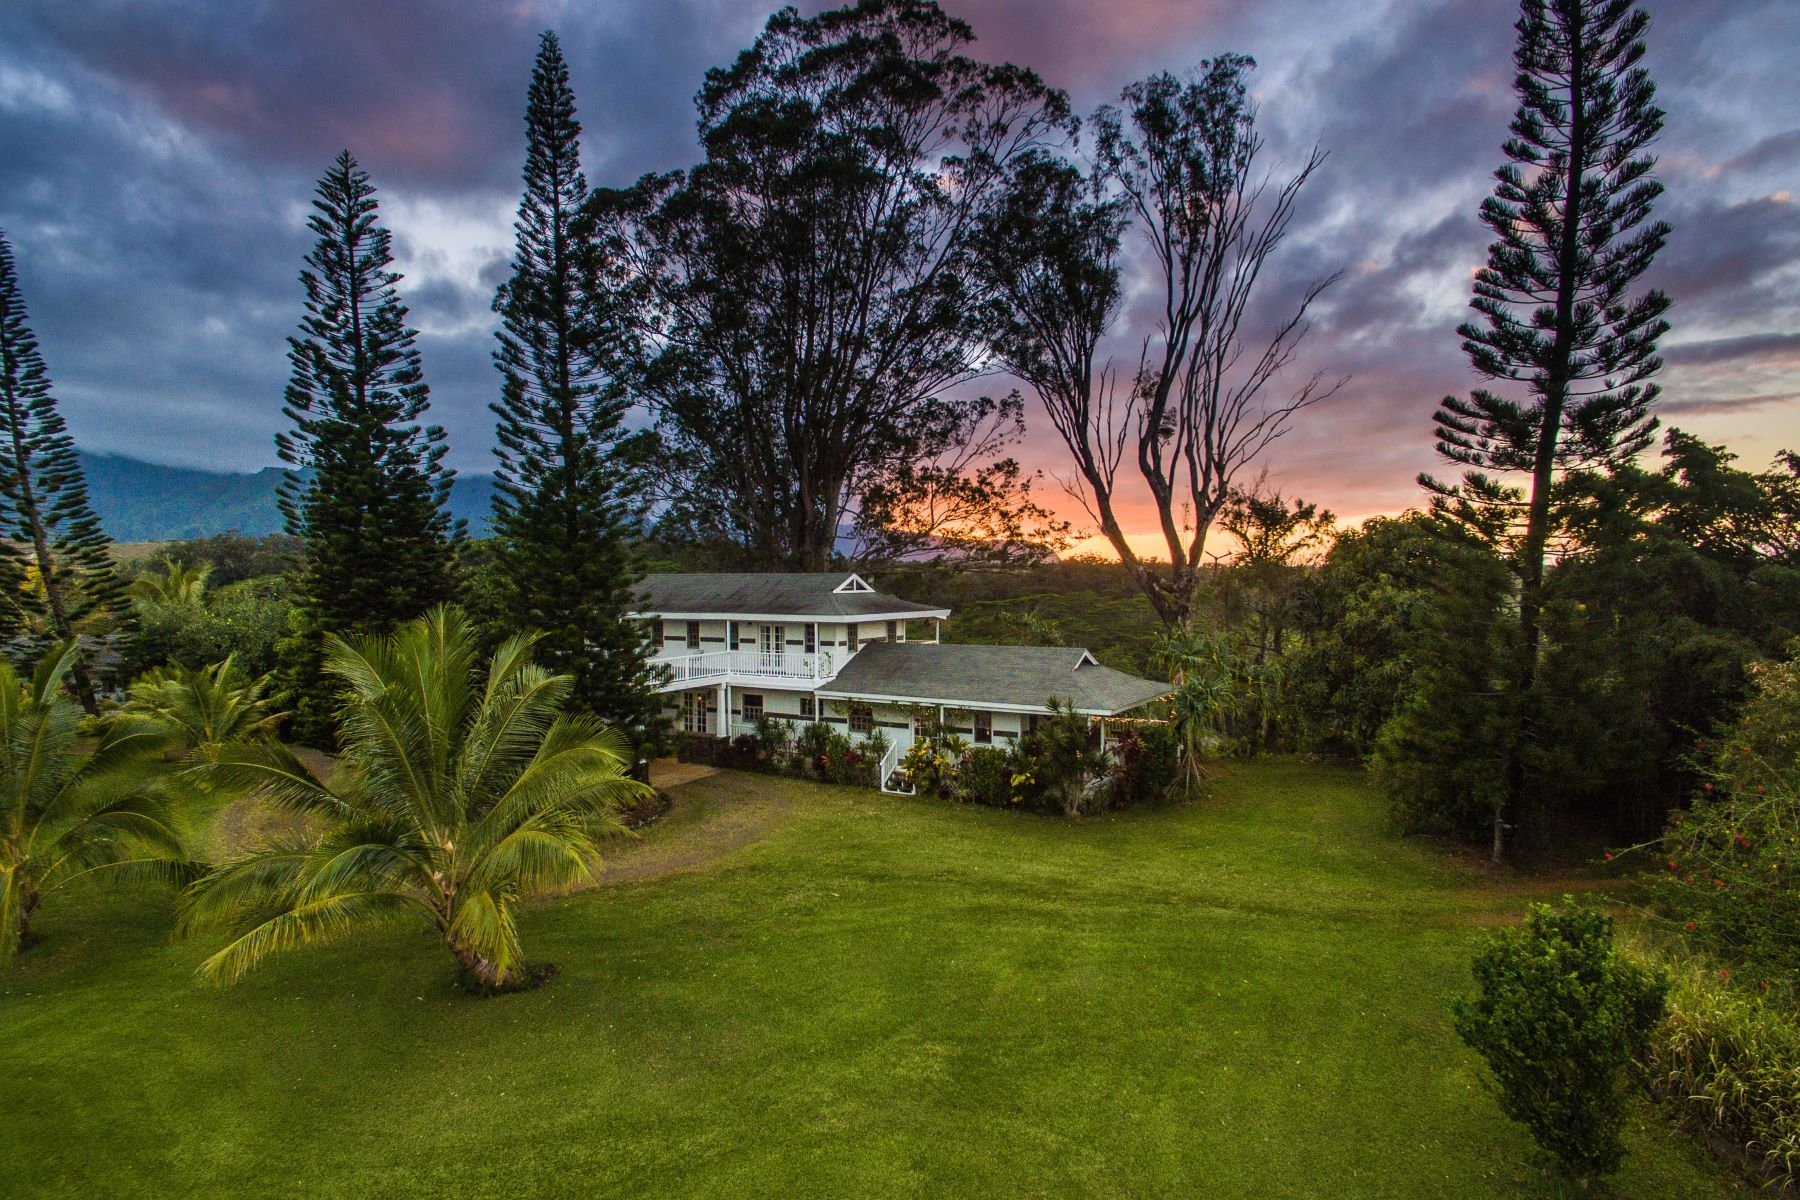 独户住宅 为 销售 在 Kauai 5-Acre Multi-Family Estate with Mountain, Waterfall, Sunset & Valley Views 5150 Kahiliholo Road #A, 基拉韦厄峰, 夏威夷, 96754 美国